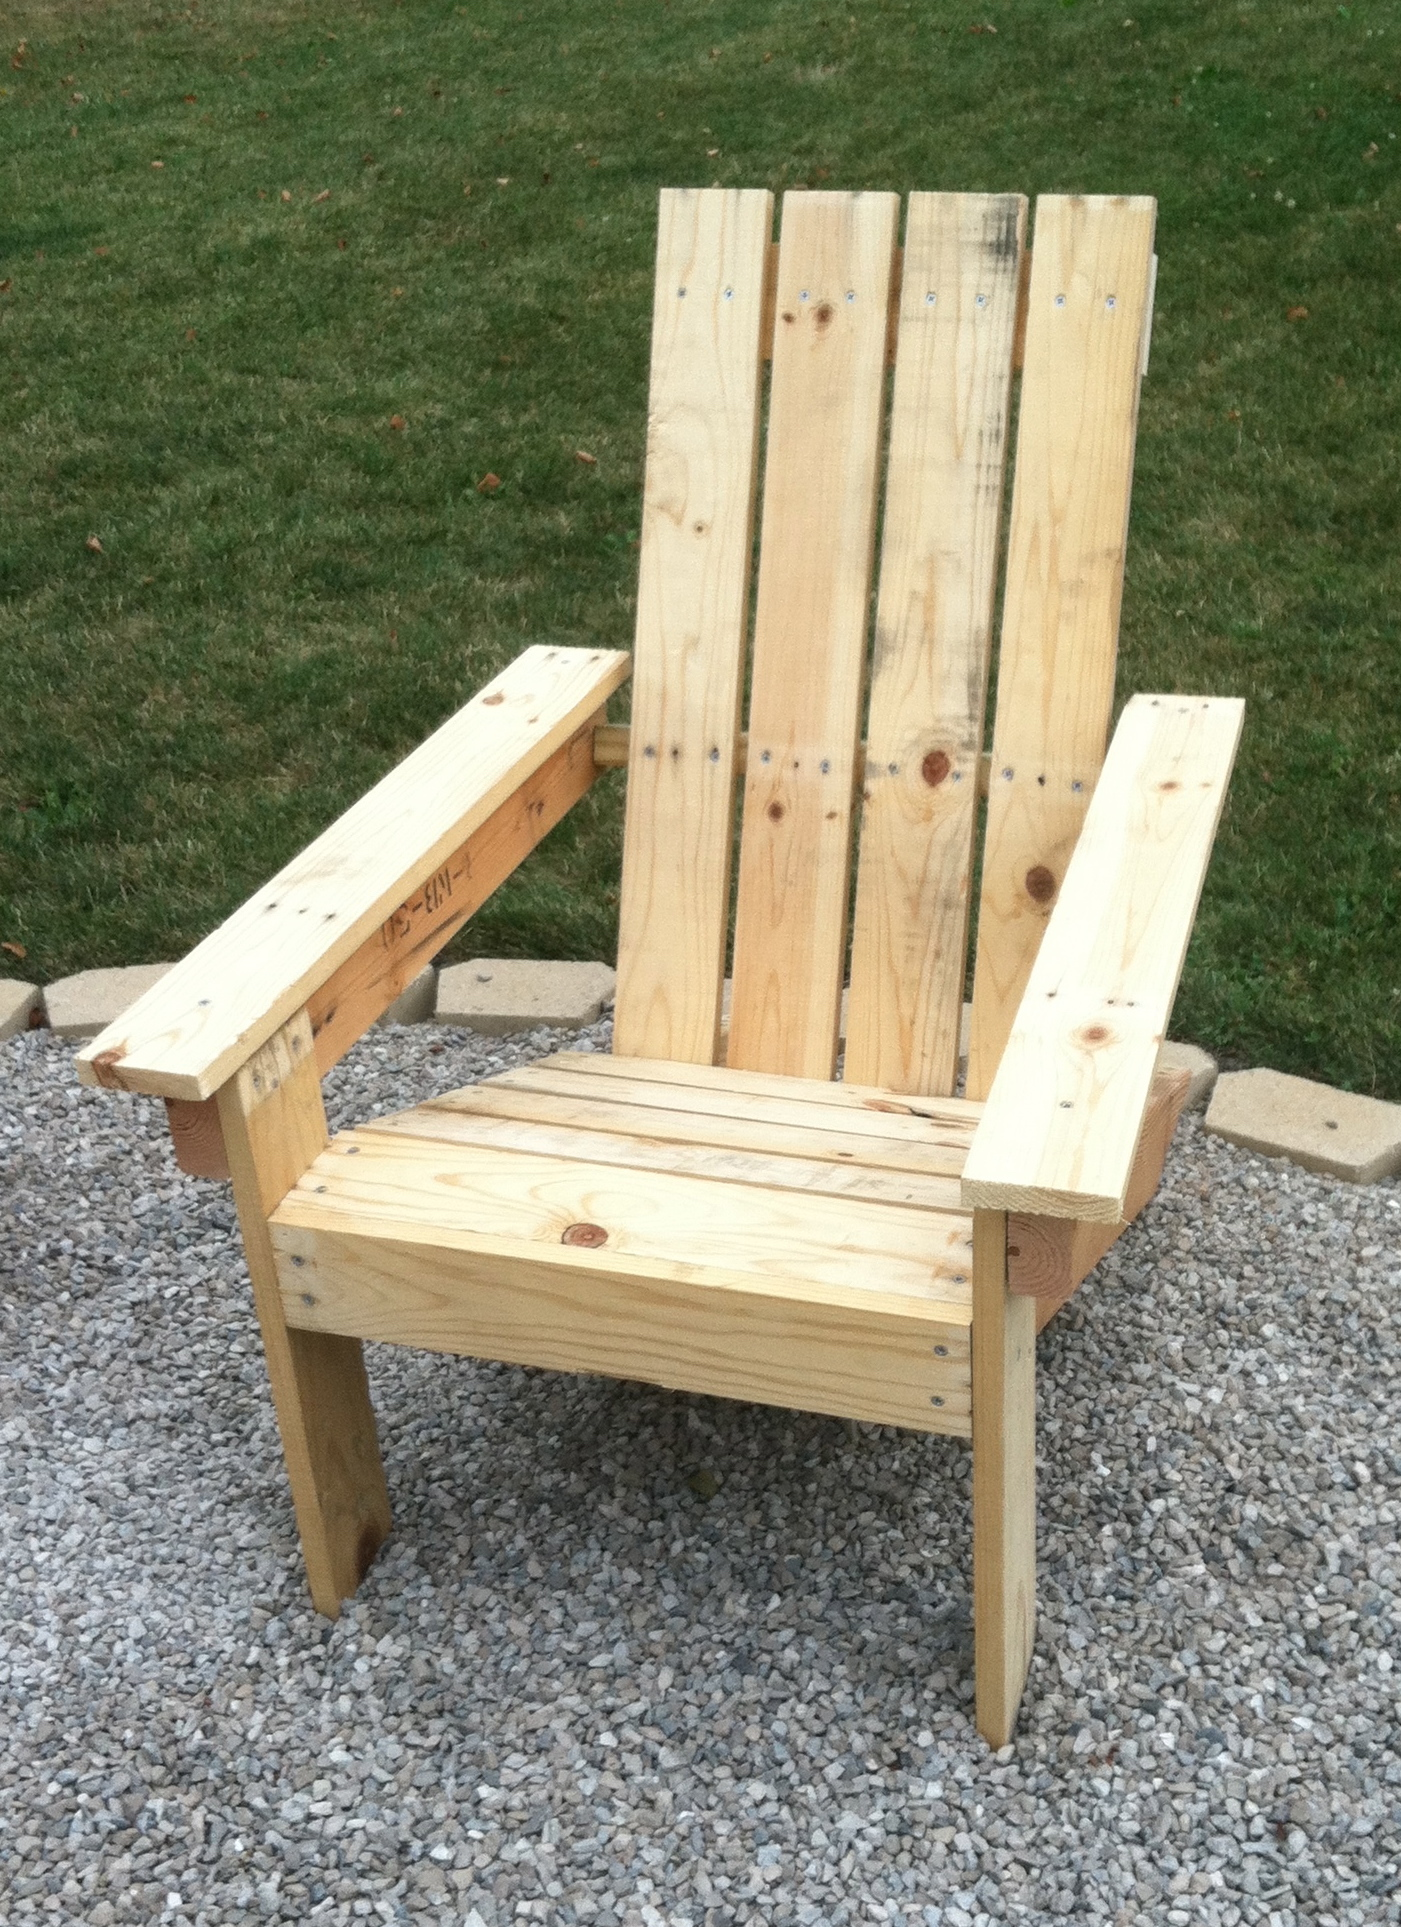 diy adirondack chair kit inflatable pool chairs pallet wood for 2 30 at